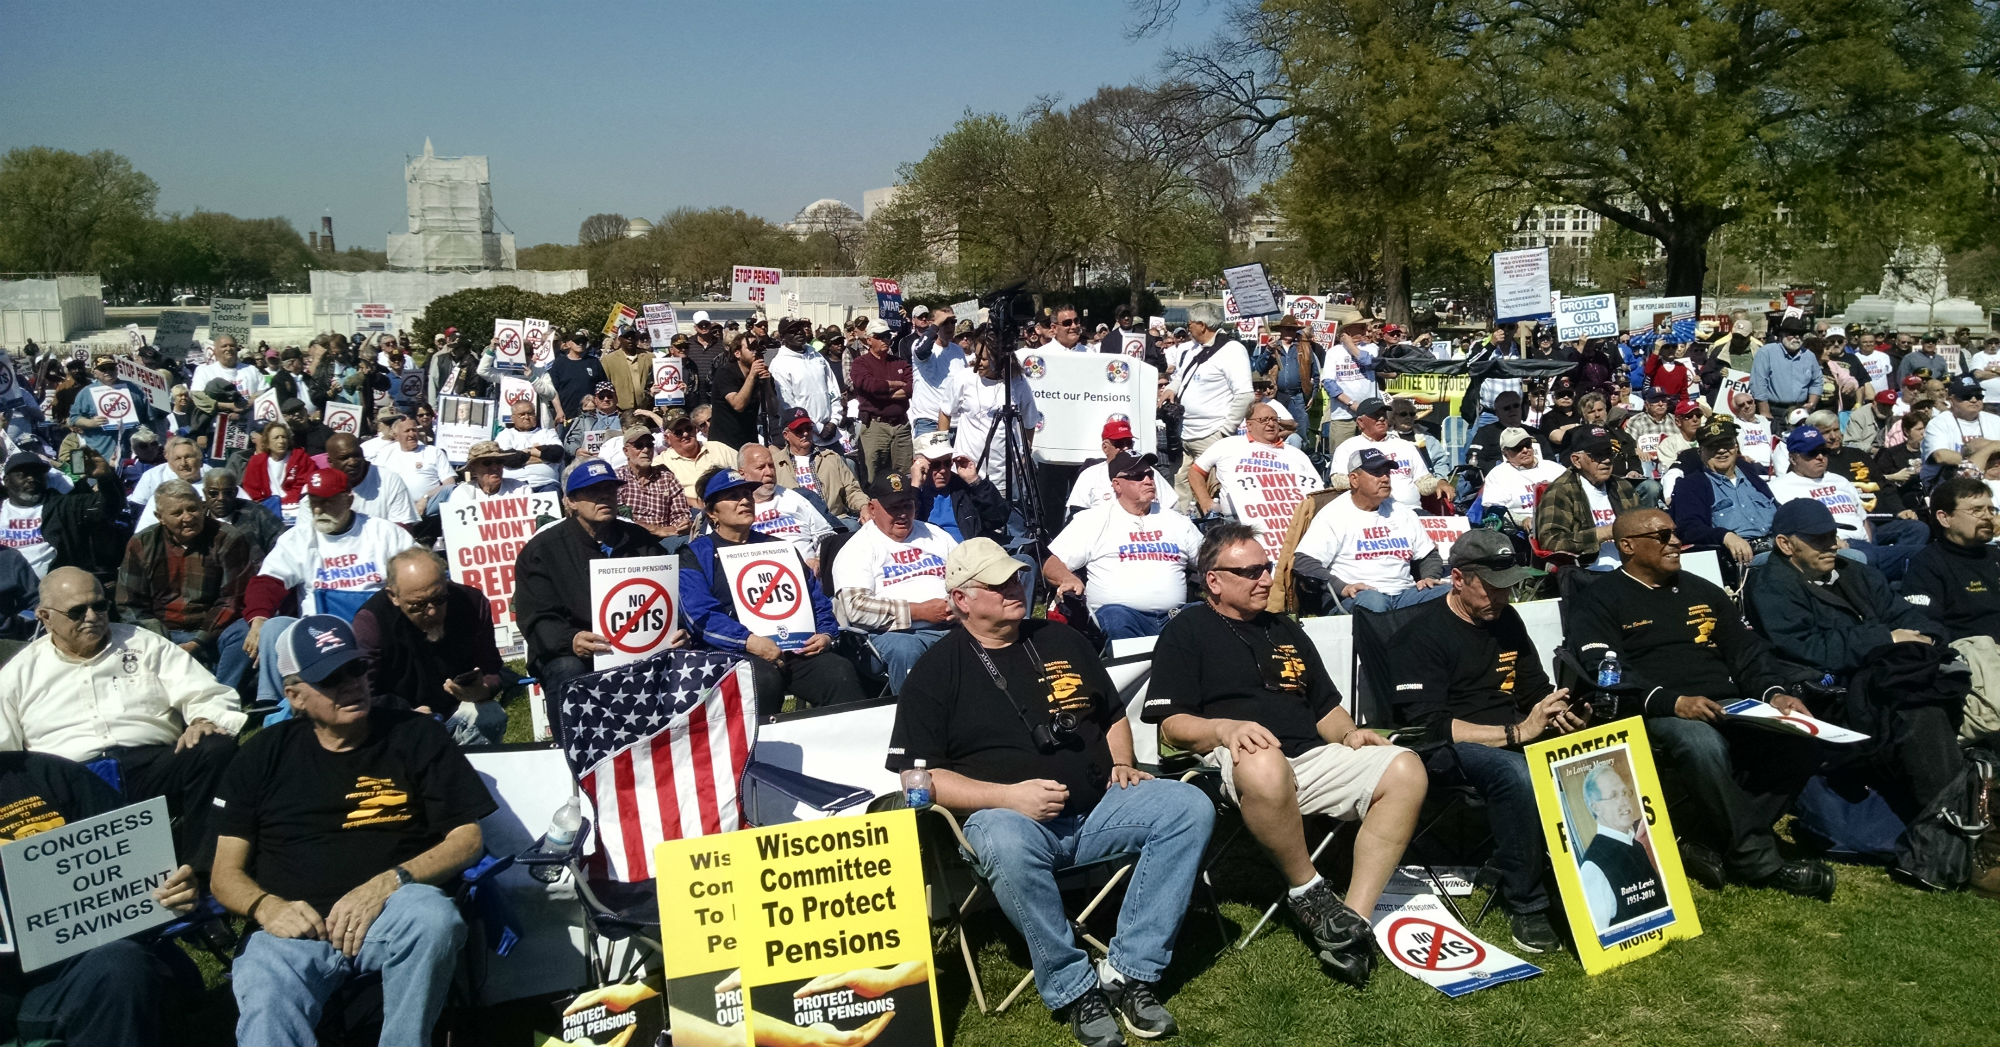 dc_pension_rally2_thumb.jpg